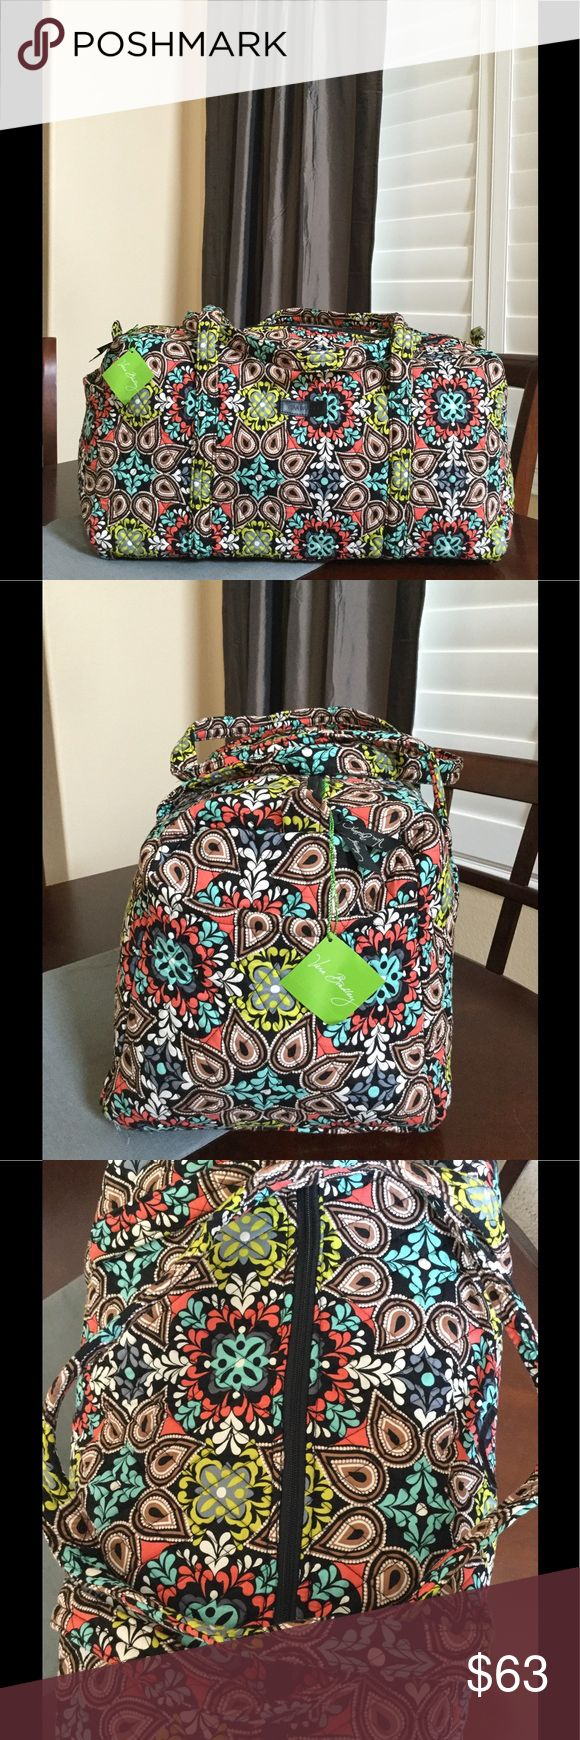 "NWT VERA BRADLEY LARGE DUFFEL Brand new with tags Vera Bradley large duffel  Sierra pattern  15"" strap drop Handy outside end pocket Folds flat for easy storing Dimensions 22"" W x 11½"" H x 11½"" D - 15"" strap drop Duffle Smoke/pet free home Vera Bradley Bags Travel Bags"